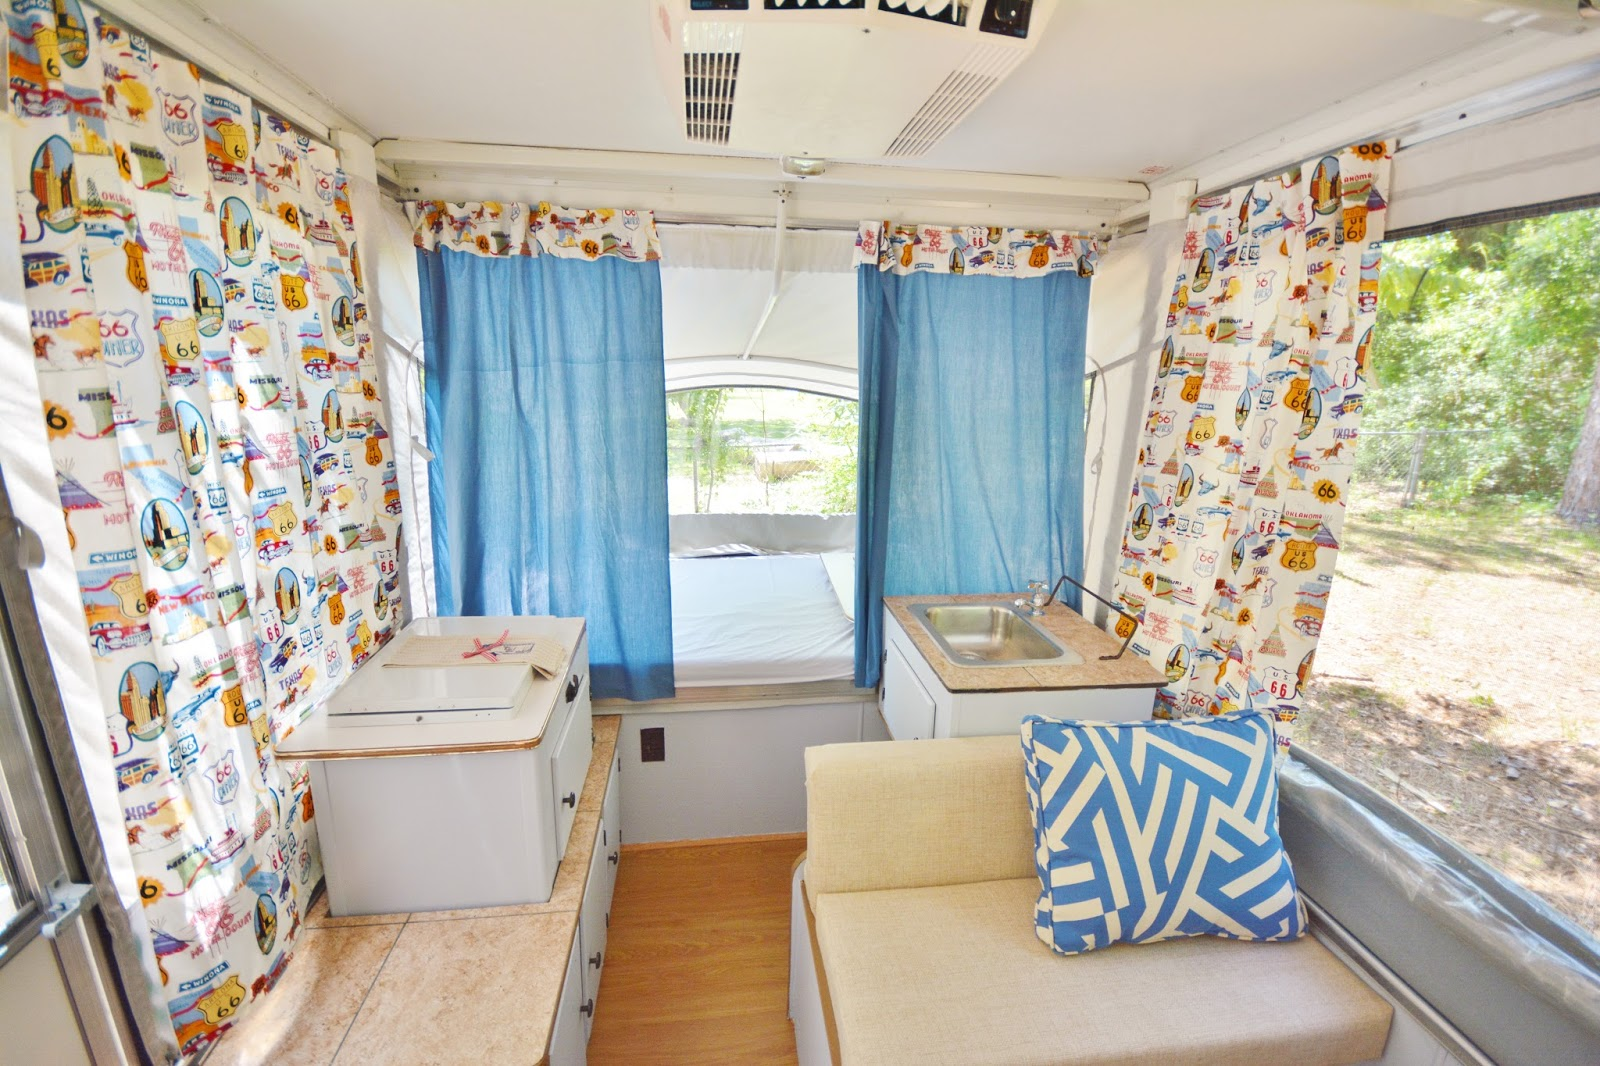 Trailer Curtains Life With 4 Boys Diy Pop Up Camper Remodel 70dayroadtrip